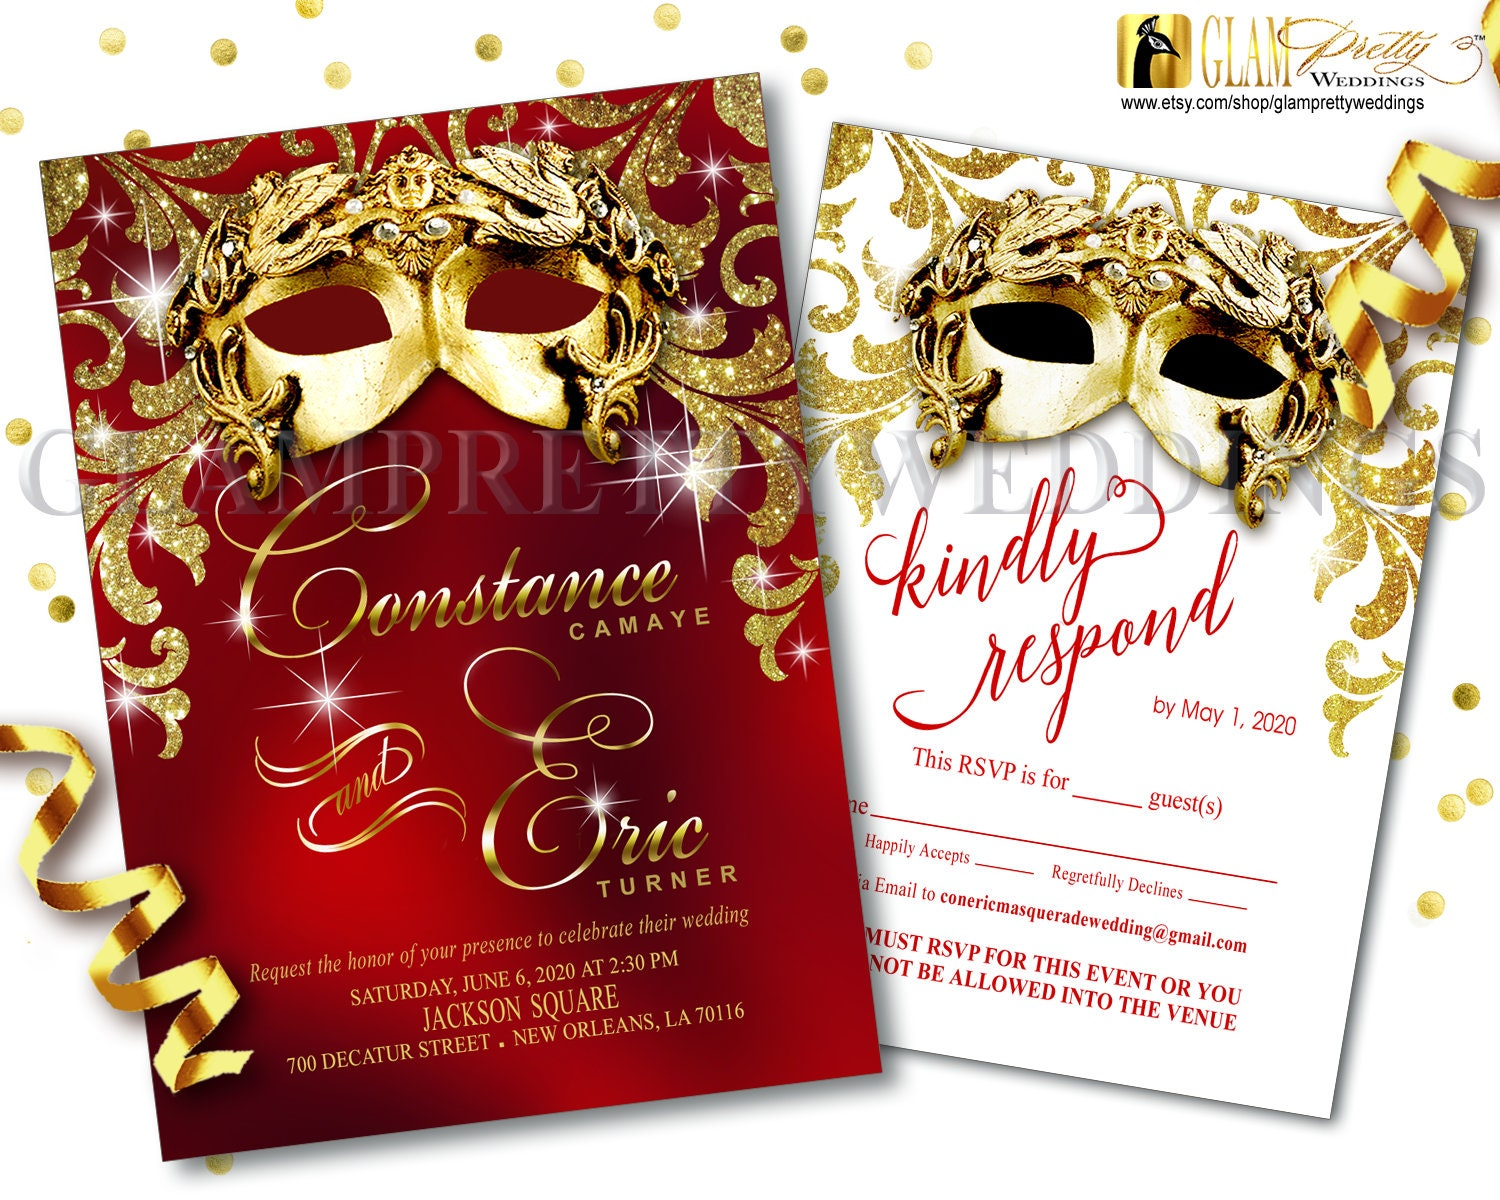 Red & Gold Masquerade Wedding Invitation/rsvp card Glam Glitz | Etsy